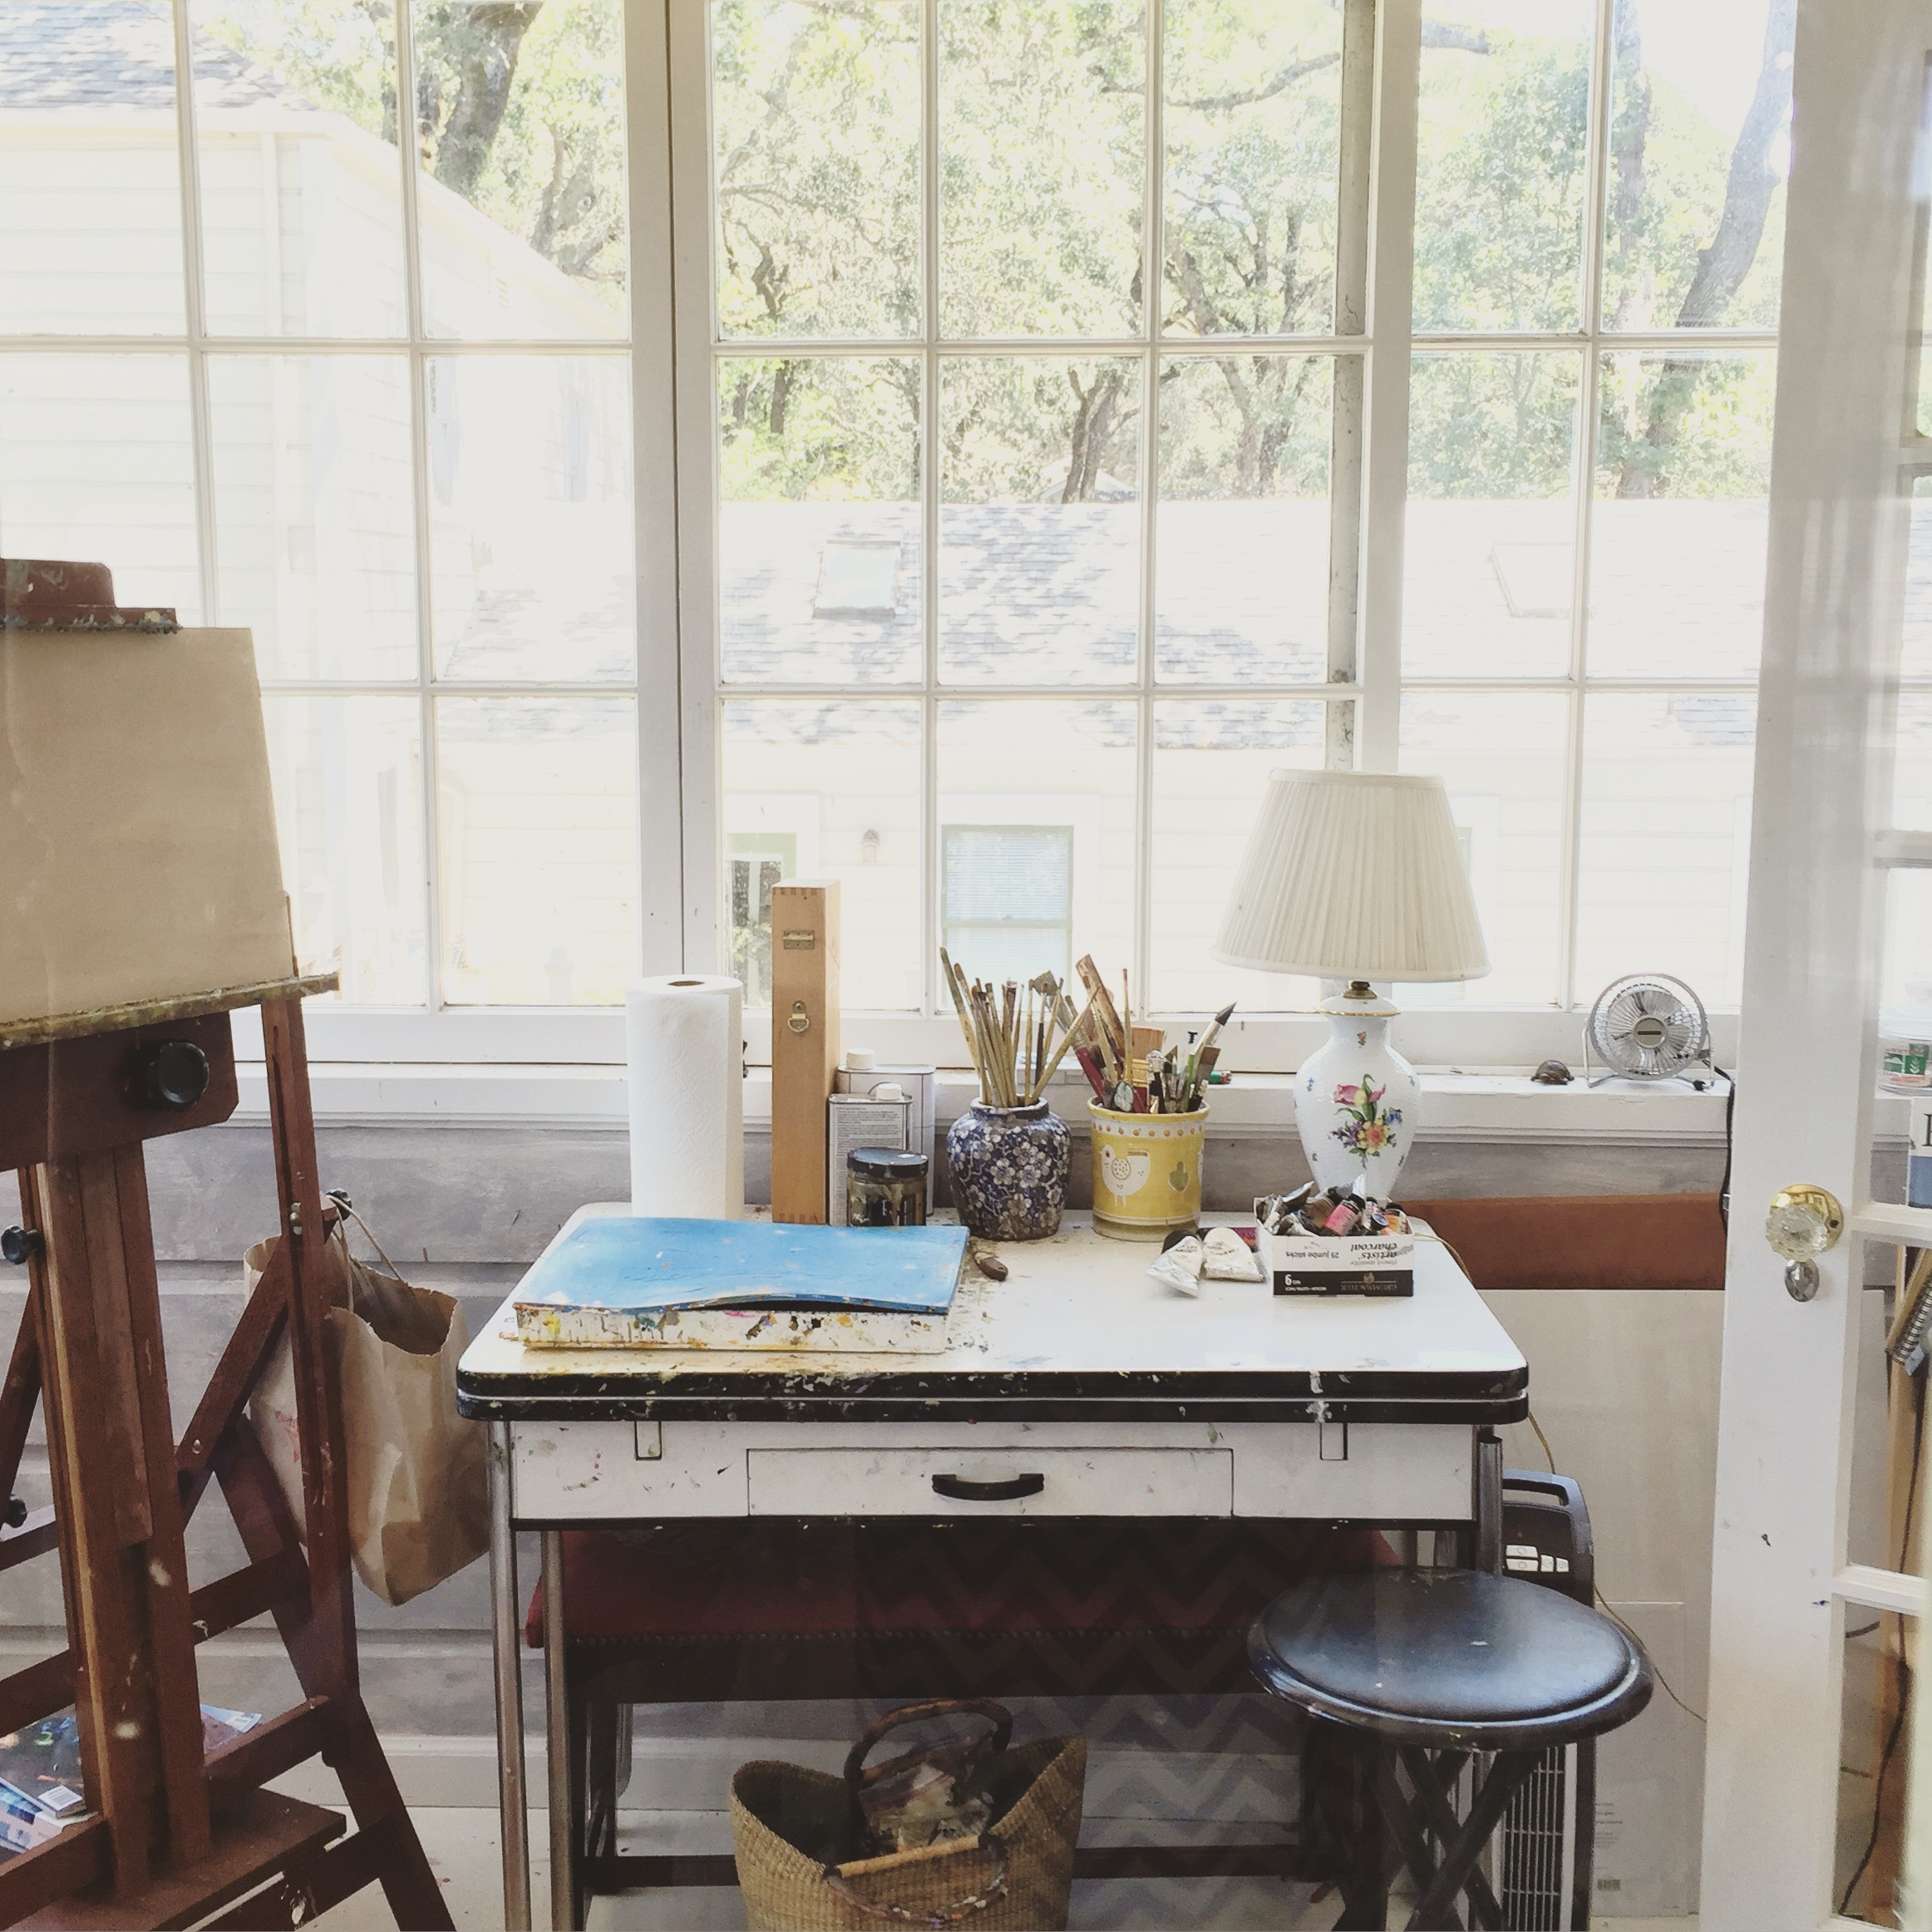 Abi's art studio where does she does her paintings.